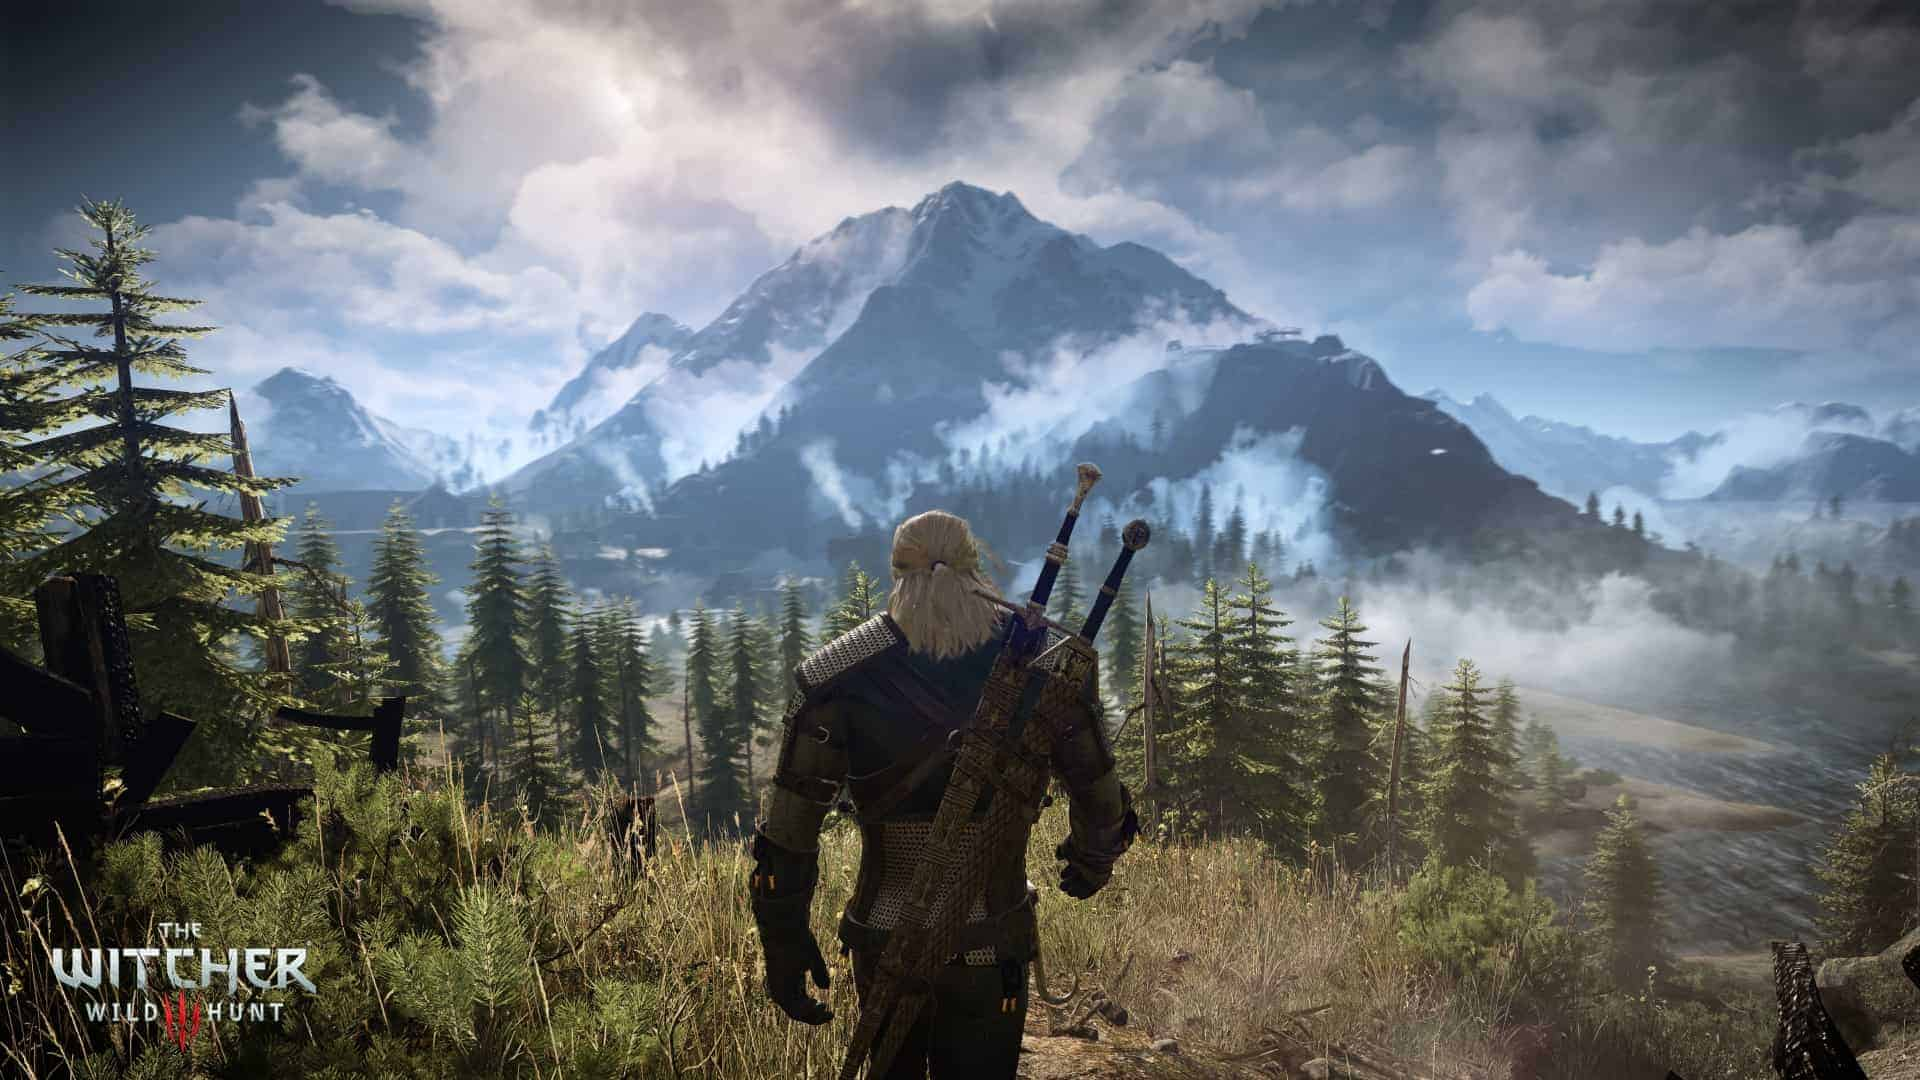 the witcher 3 download pc